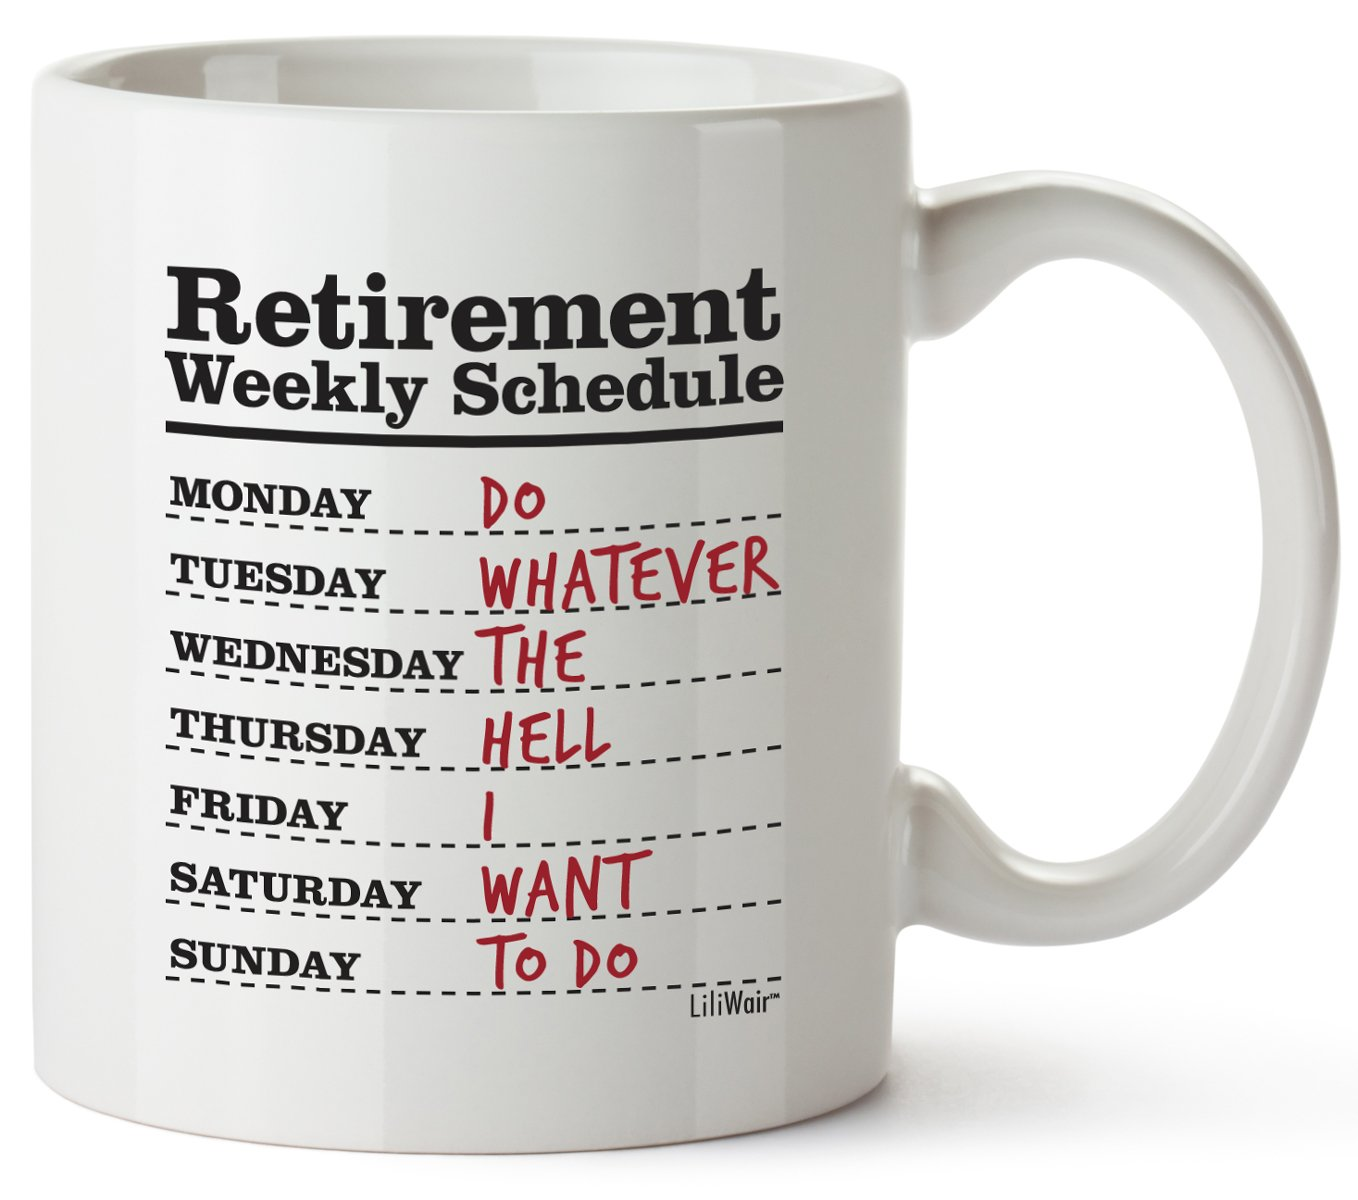 Funny Retirement Gifts for Women Men Dad Mom. Retirement Coffee Mug Gift. Retired Schedule Calendar Mugs for Coworkers Office & Family. Unique Novelty Ideas for Her Nurses Navy Air Force Military Gag